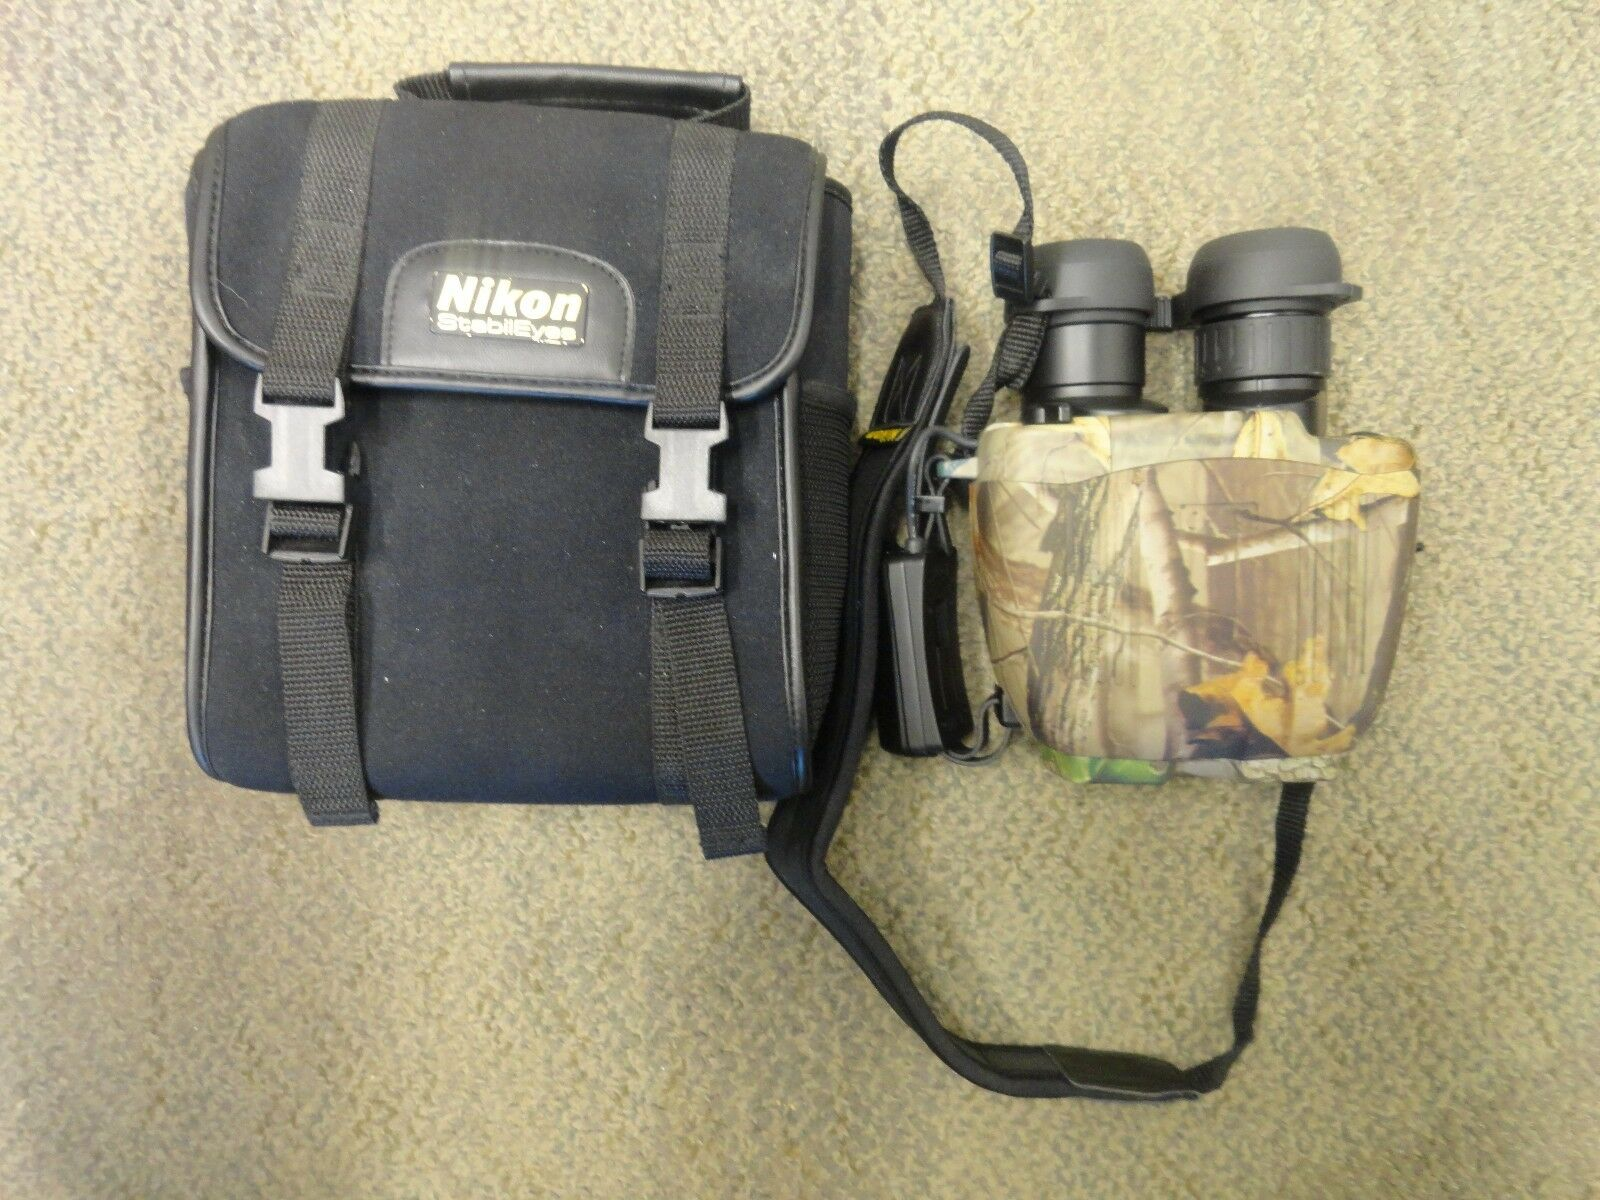 Realtree Camo Nikon StabilEyes 12x32 VR Image Stabilization Binoculars with Case